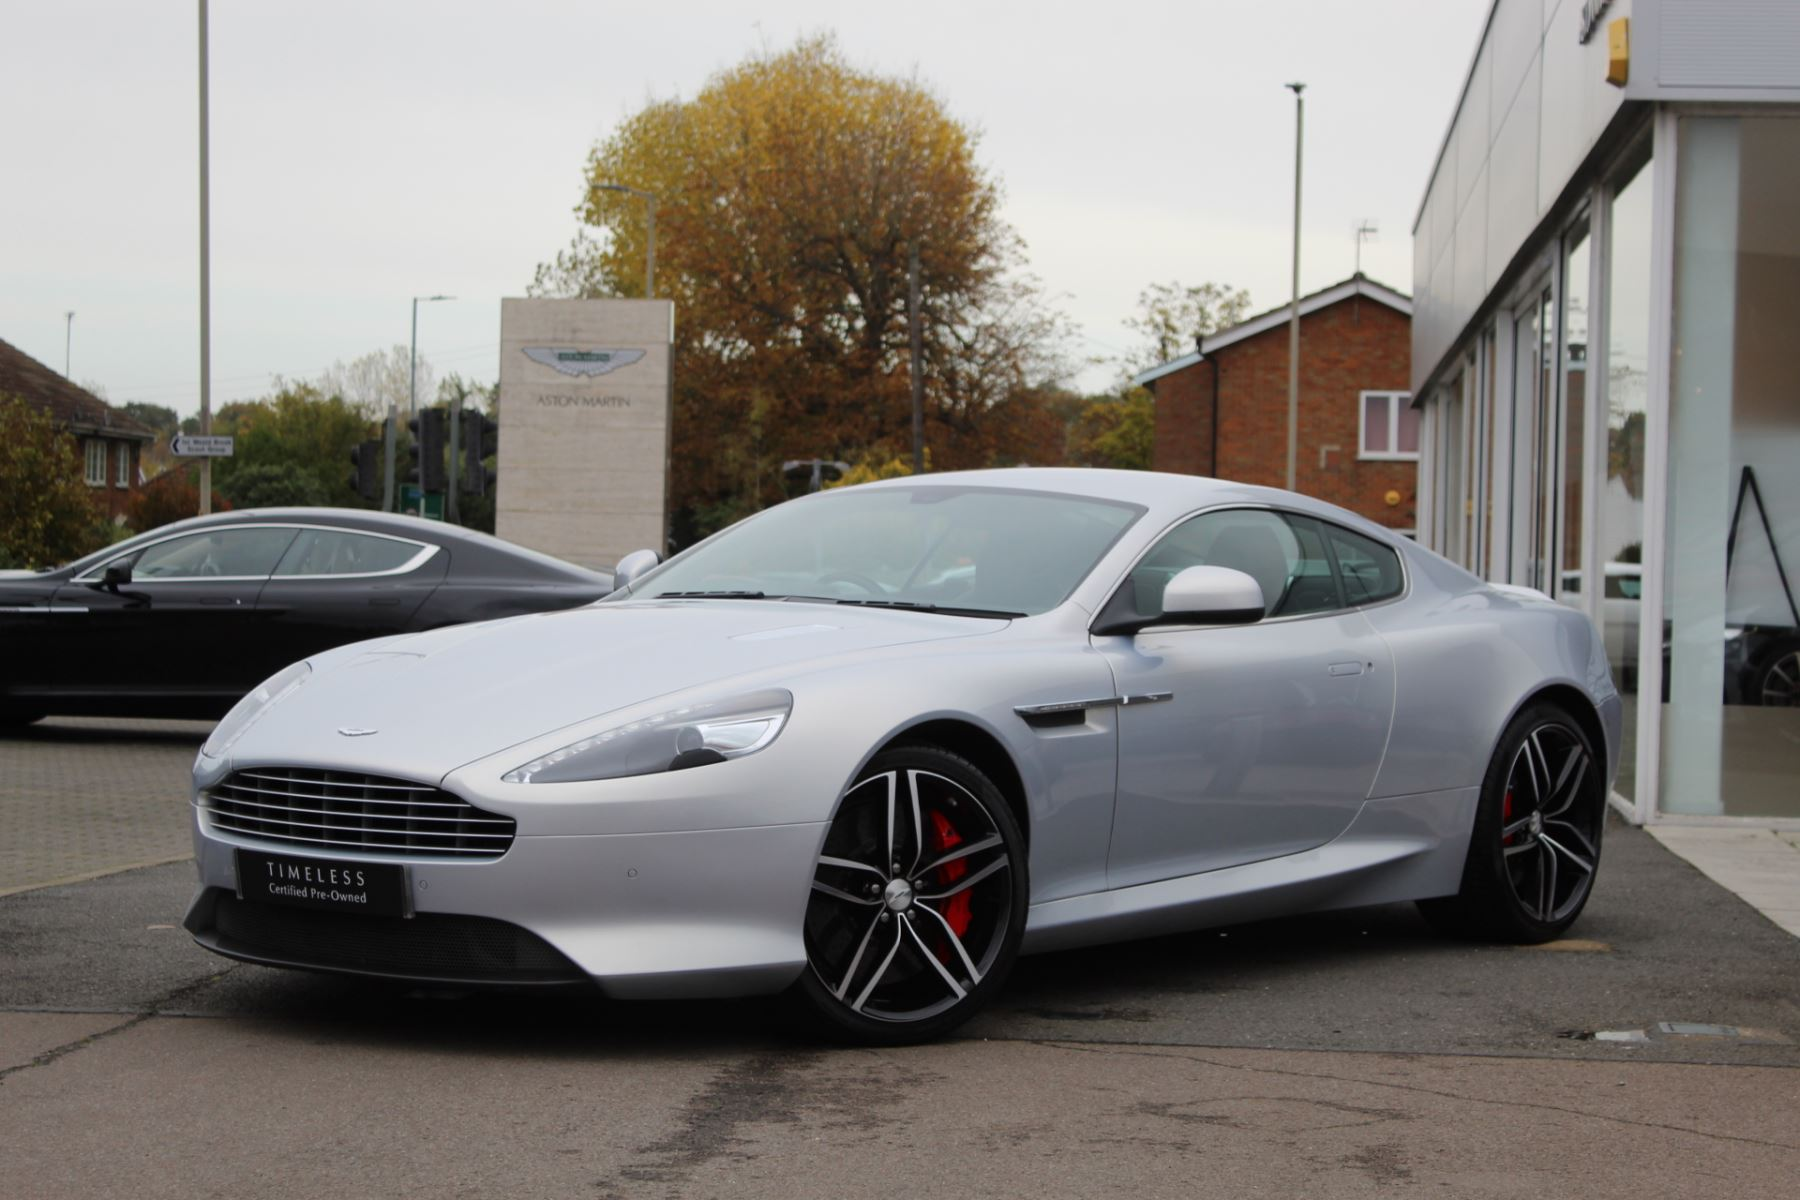 Aston Martin DB9 V12 2dr Touchtronic 5.9 Automatic Coupe (2014) image